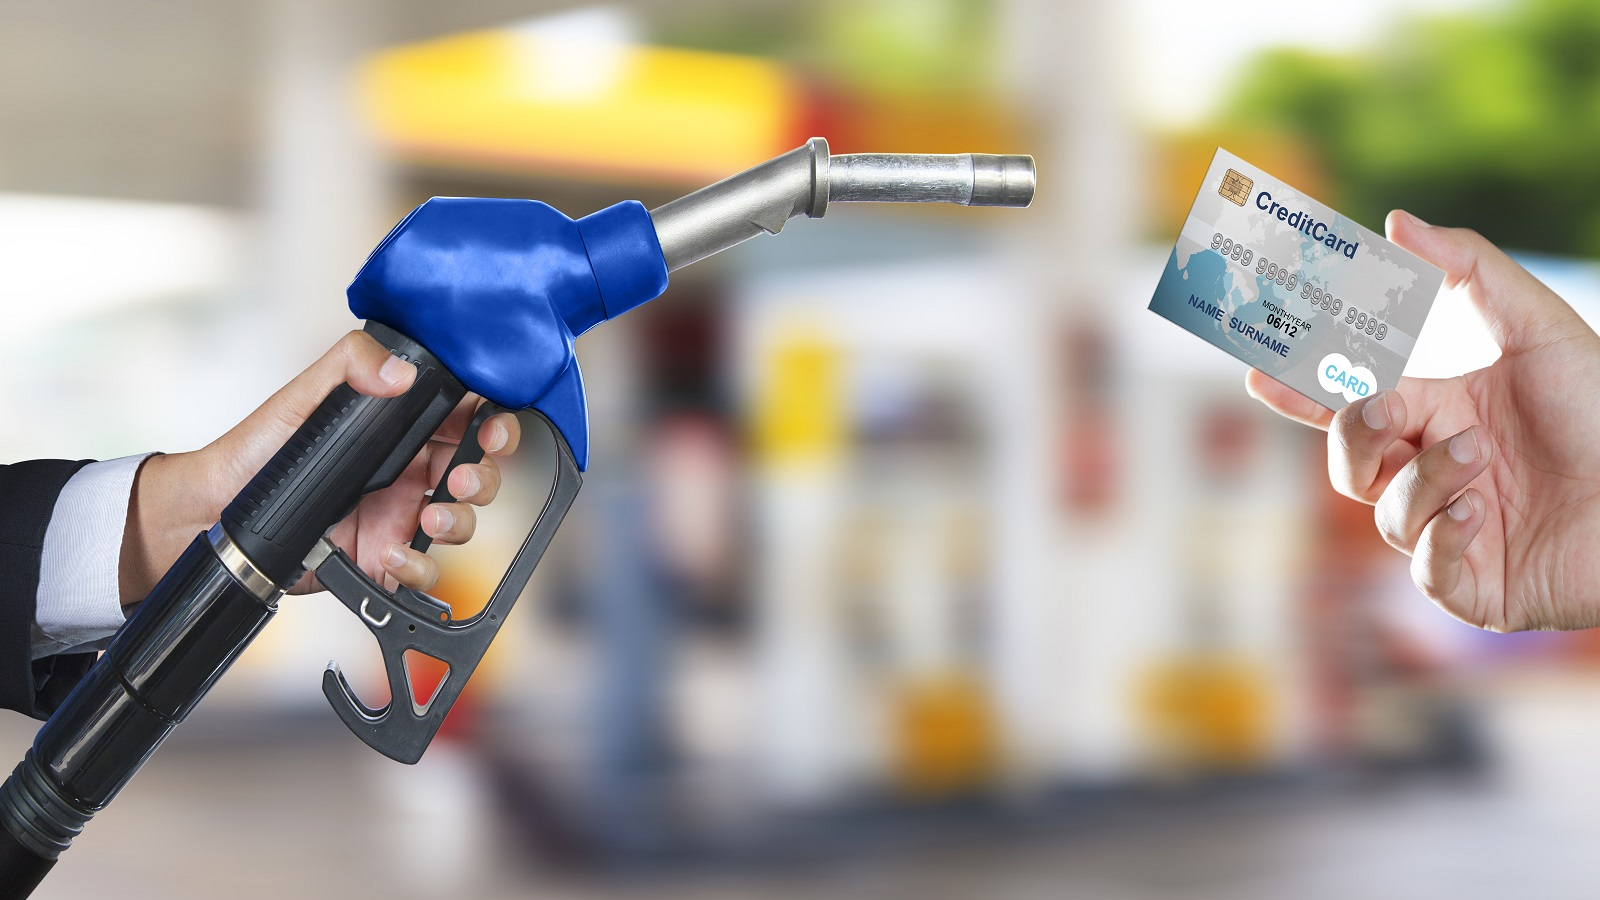 Photo of gas pump handle and credit card. (Image by Shutterstock/Naypong Studio.)